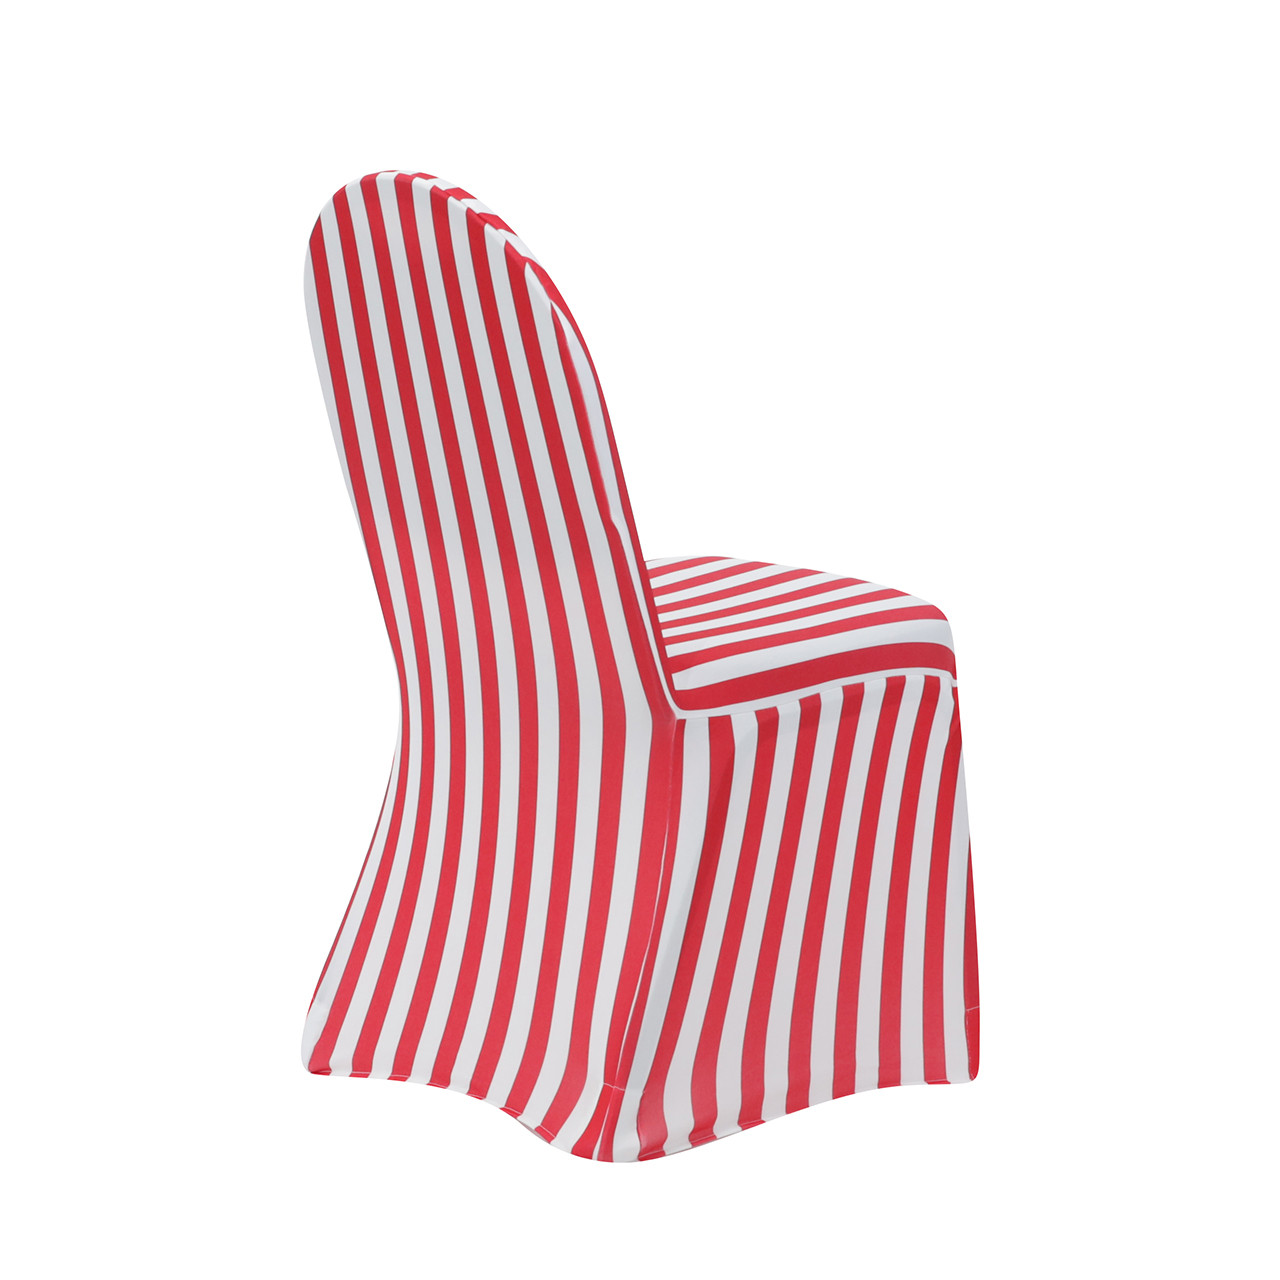 Awesome Spandex Chair Cover Striped White And Red Pack Of 6 Lamtechconsult Wood Chair Design Ideas Lamtechconsultcom